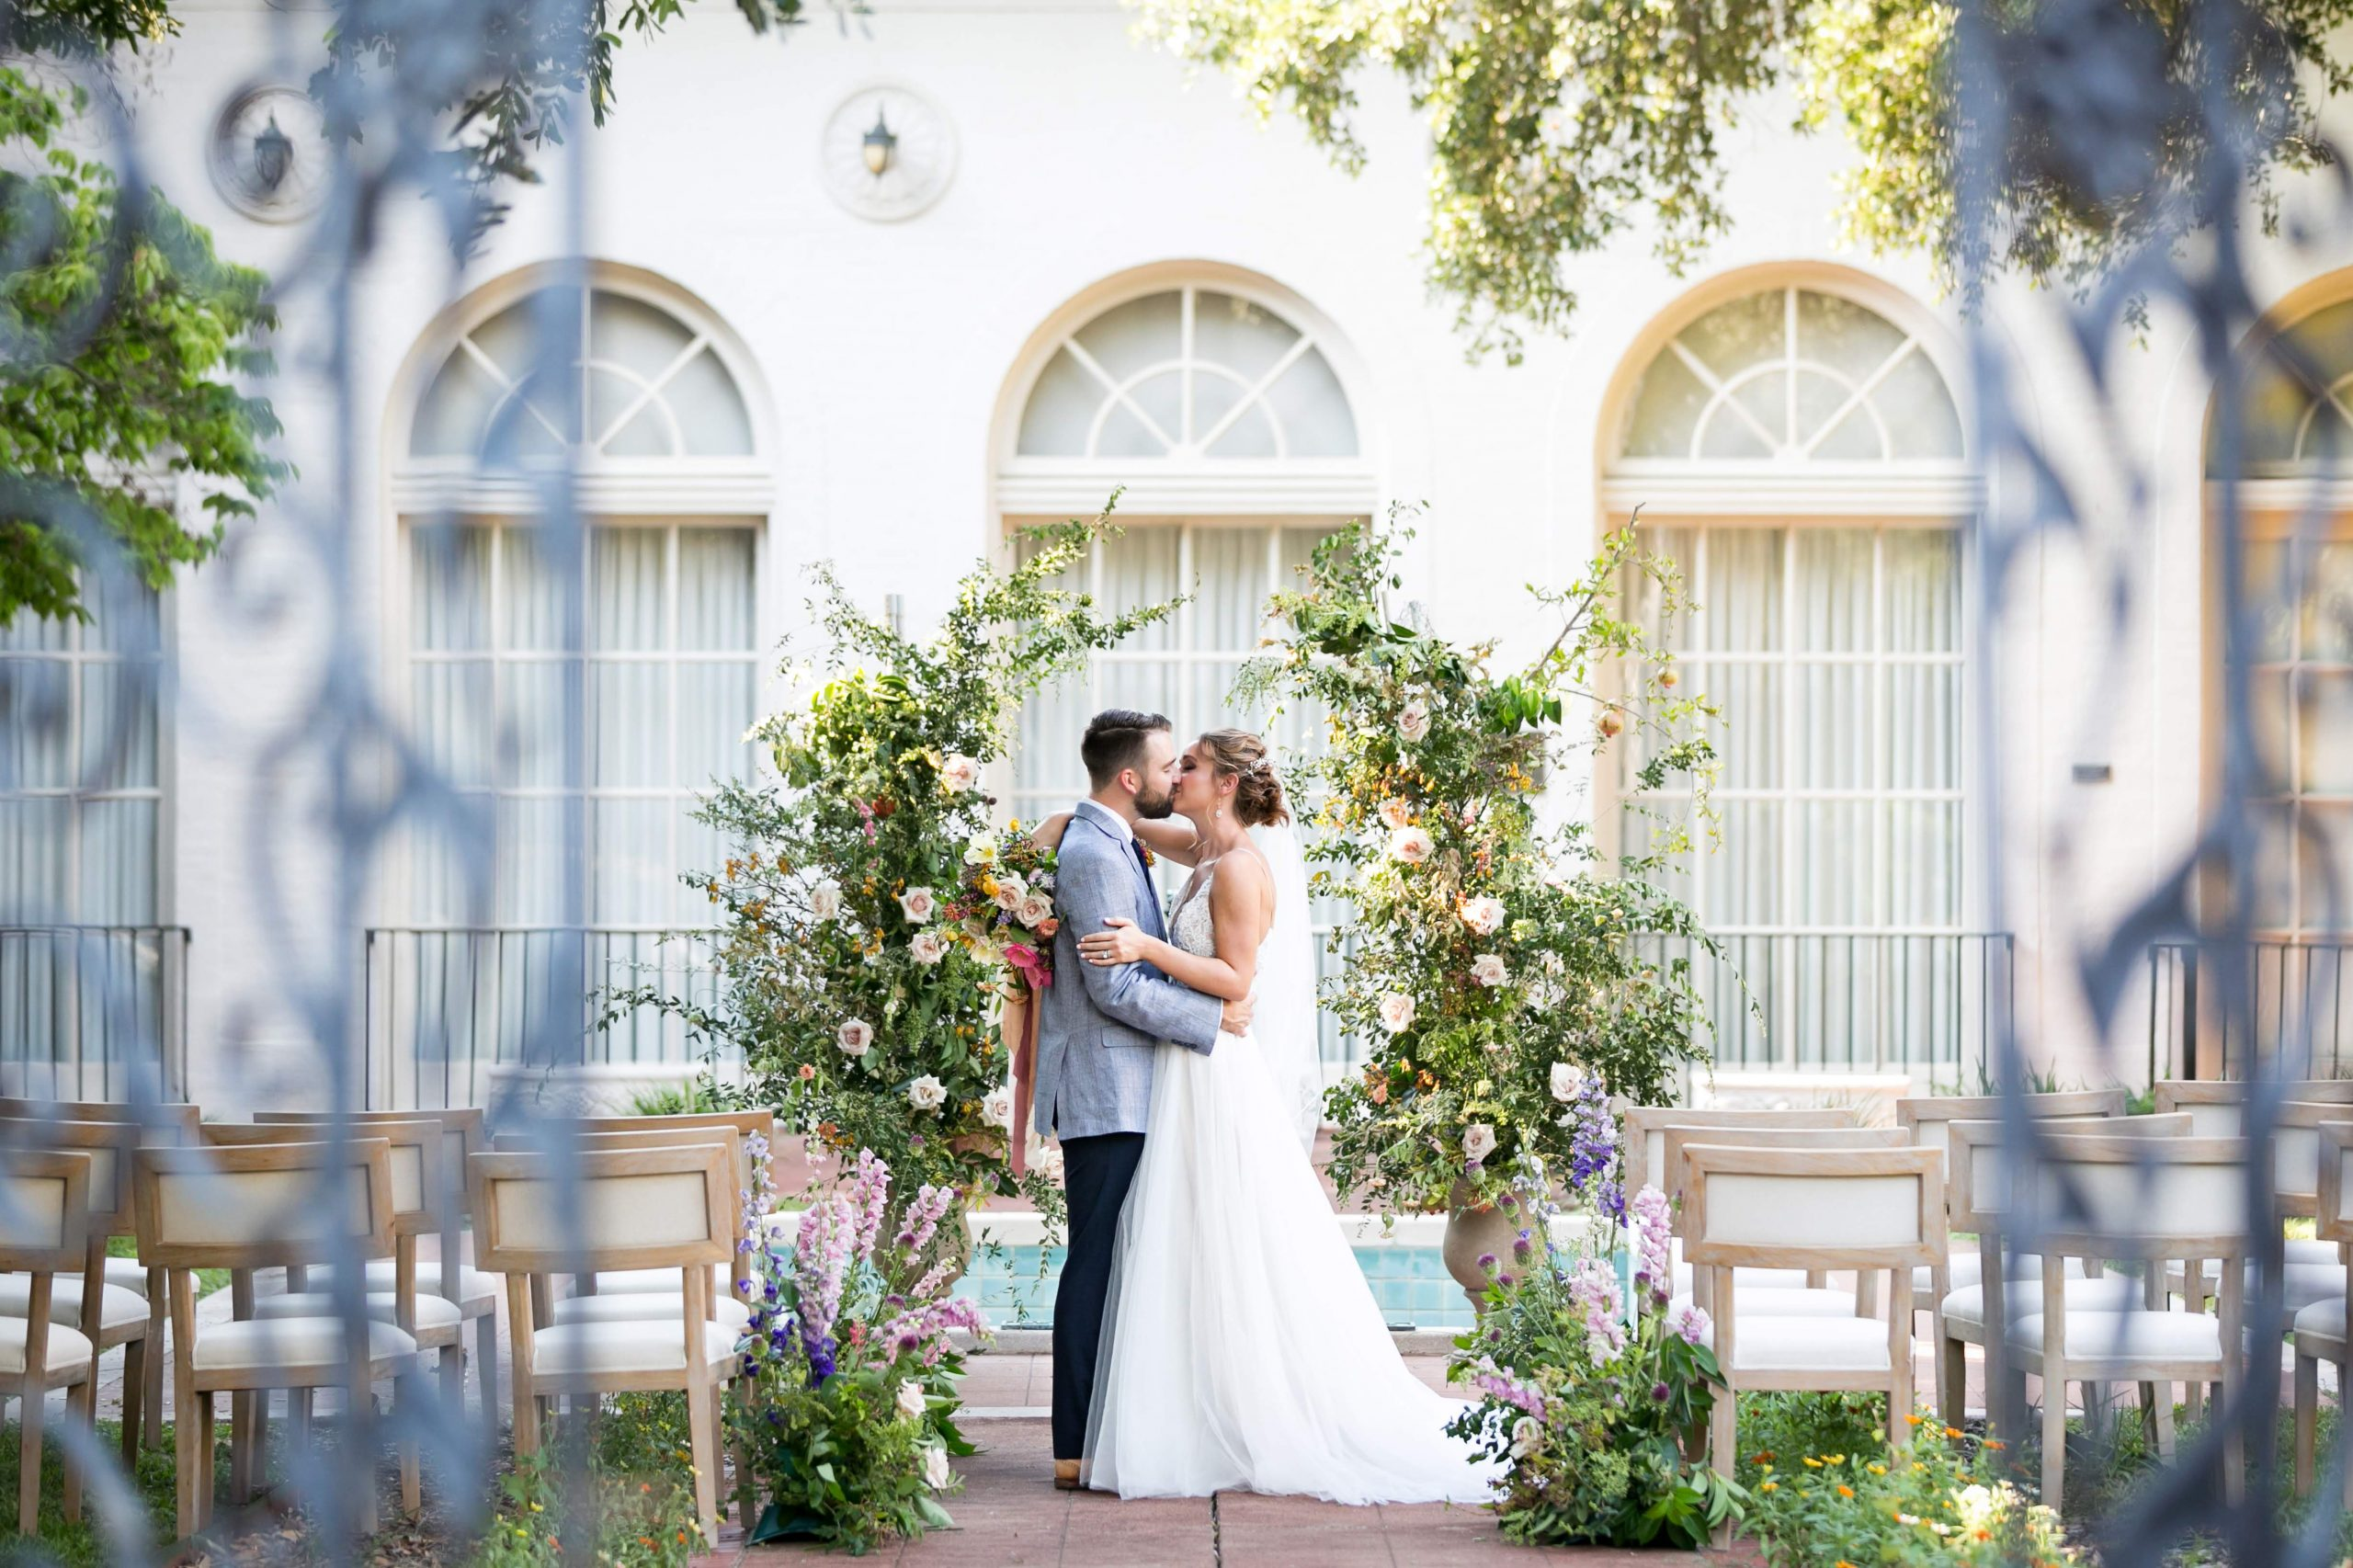 Is a Micro-Wedding for You?